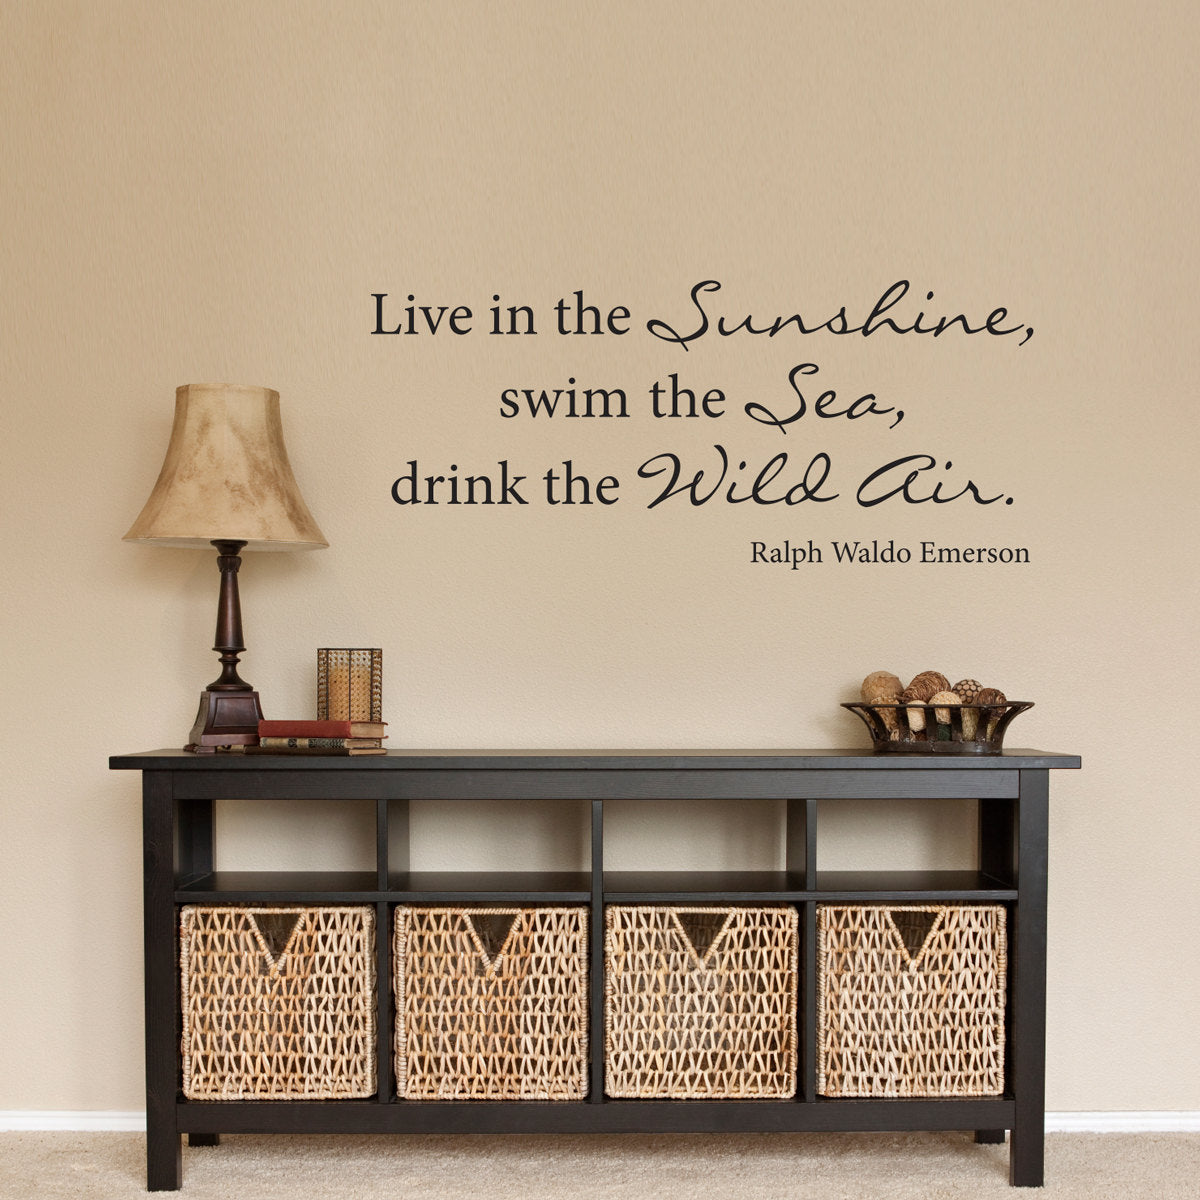 Emerson Quote Wall Decal Drink The Wild Air Ralph Waldo Medium Brown New Live In Sunshine